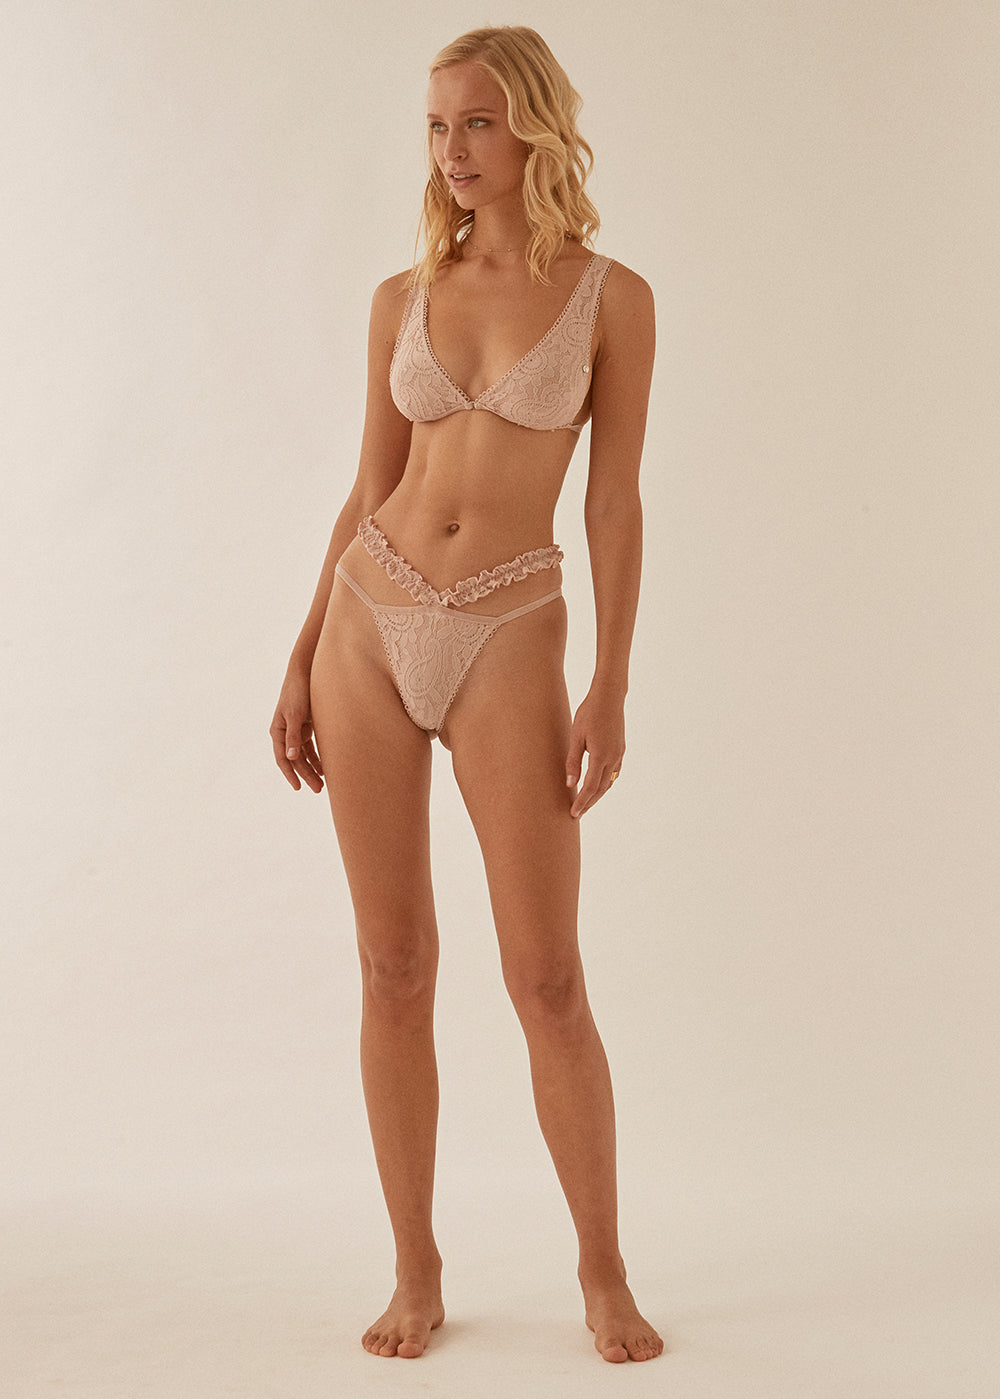 Bridget Long Line Bralette